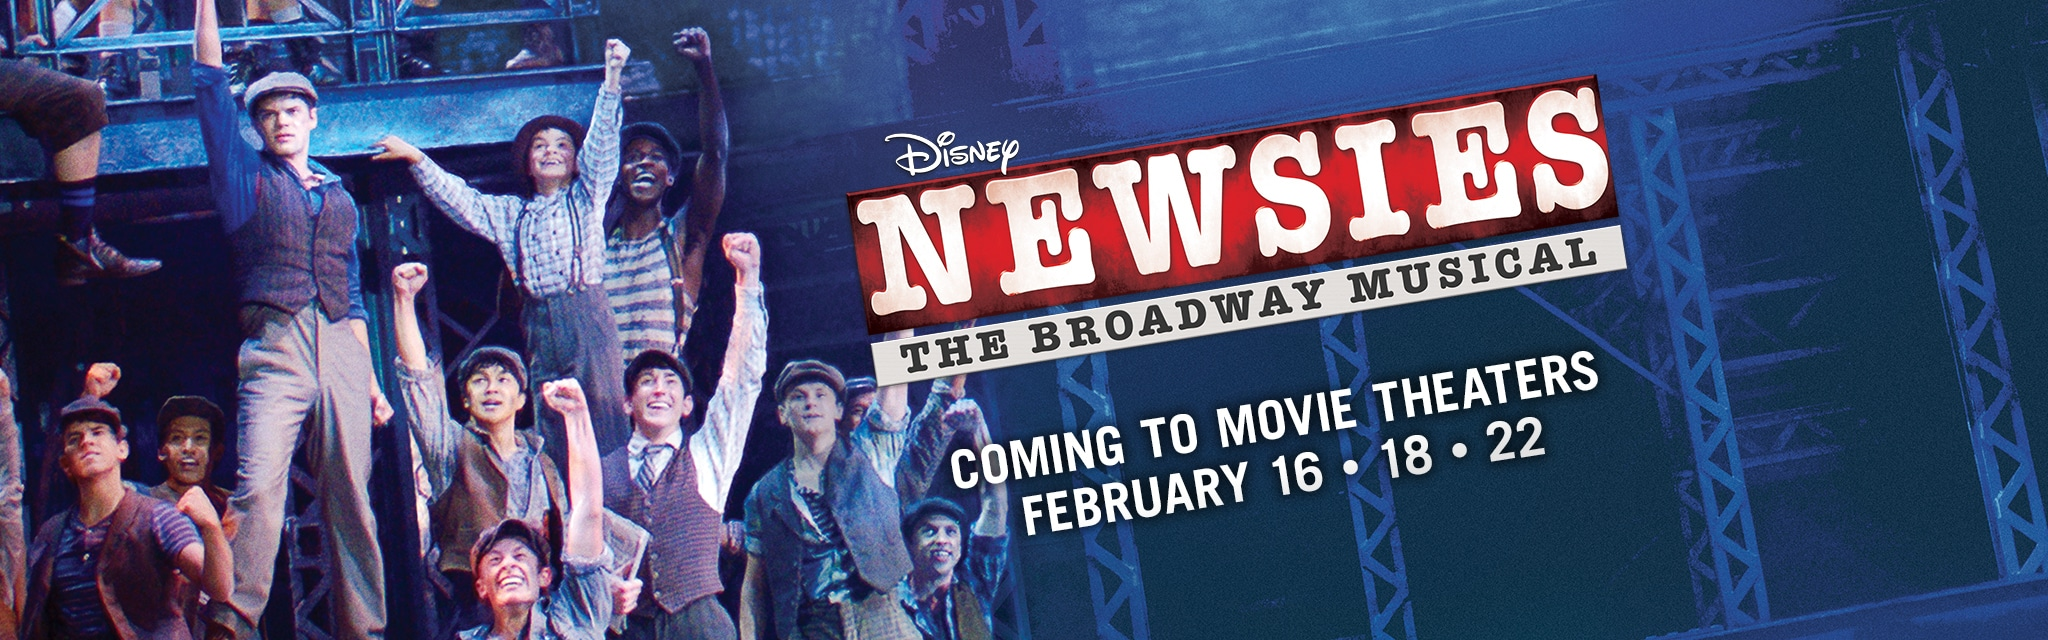 Disney on Broadway in Theaters - Newsies - Hero